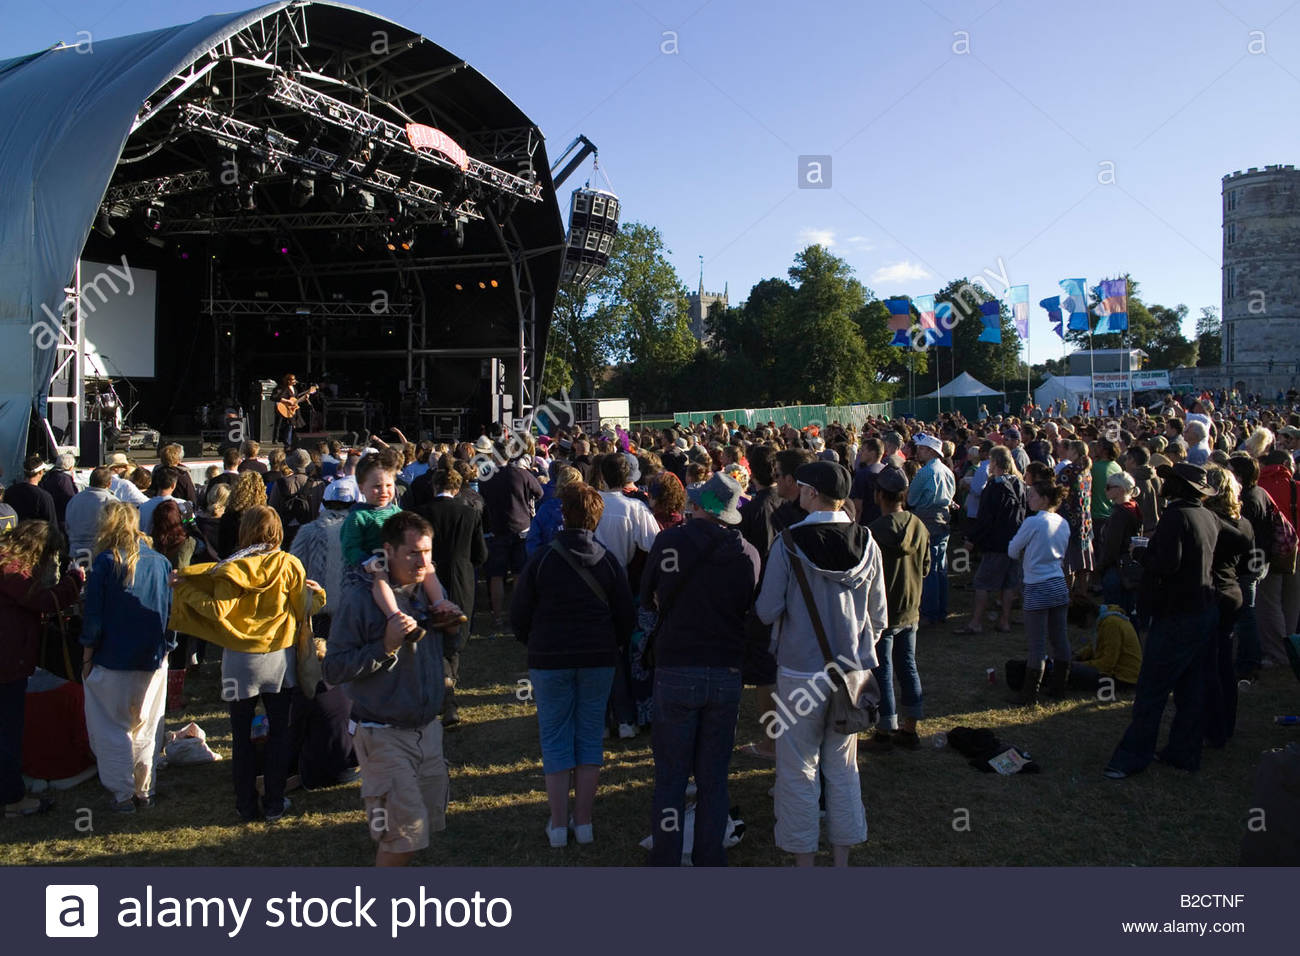 Camp Bestival Music Festival de julio de 2008 Break Lulworth Dorset, Inglaterra Imagen De Stock